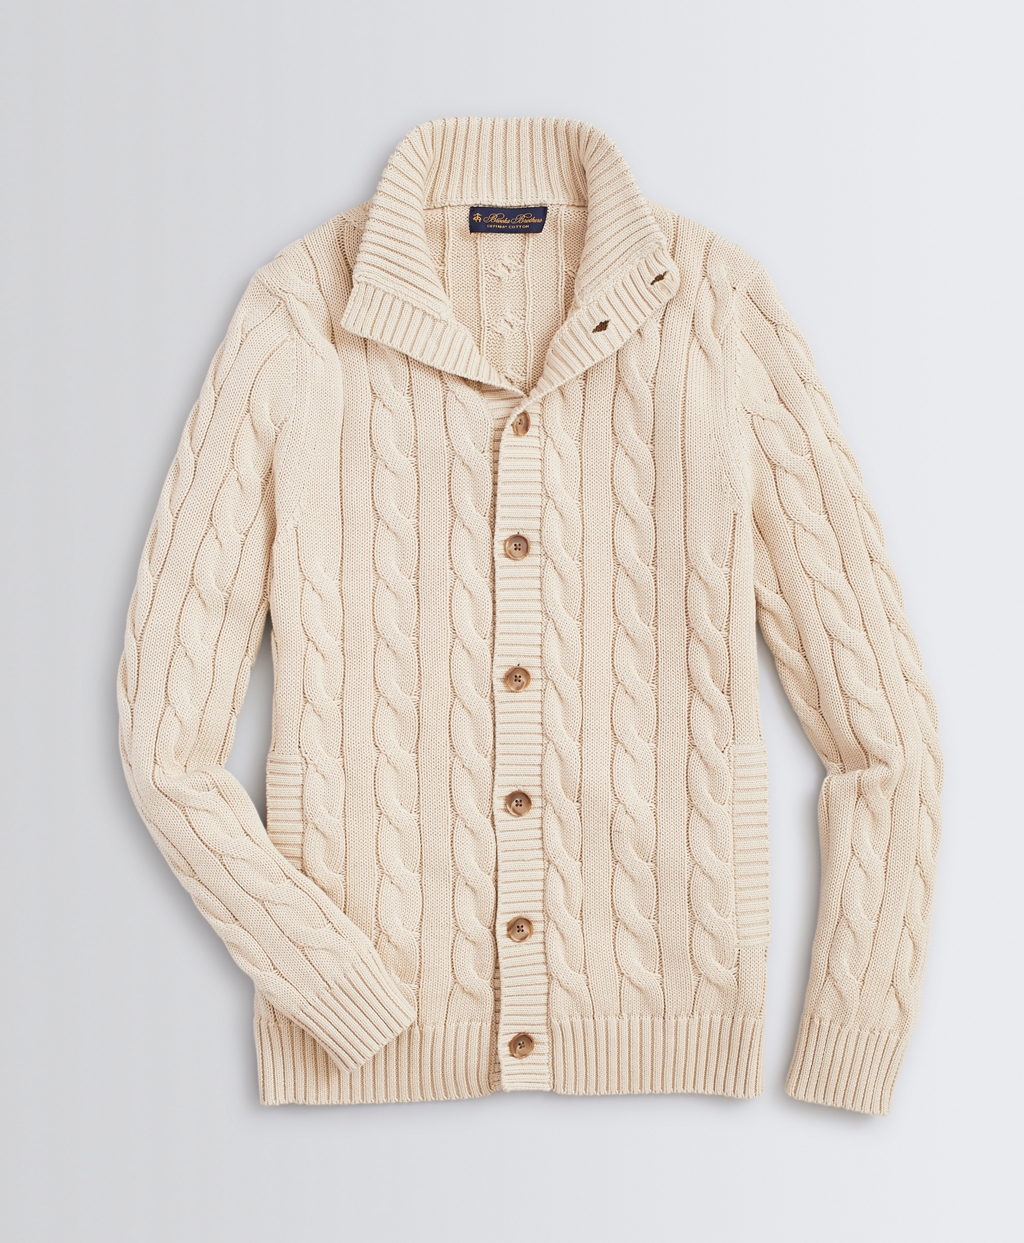 Men's Vintage Sweaters History Brooks Brothers Mens Mockneck Button-Front Cable Cardigan $148.00 AT vintagedancer.com